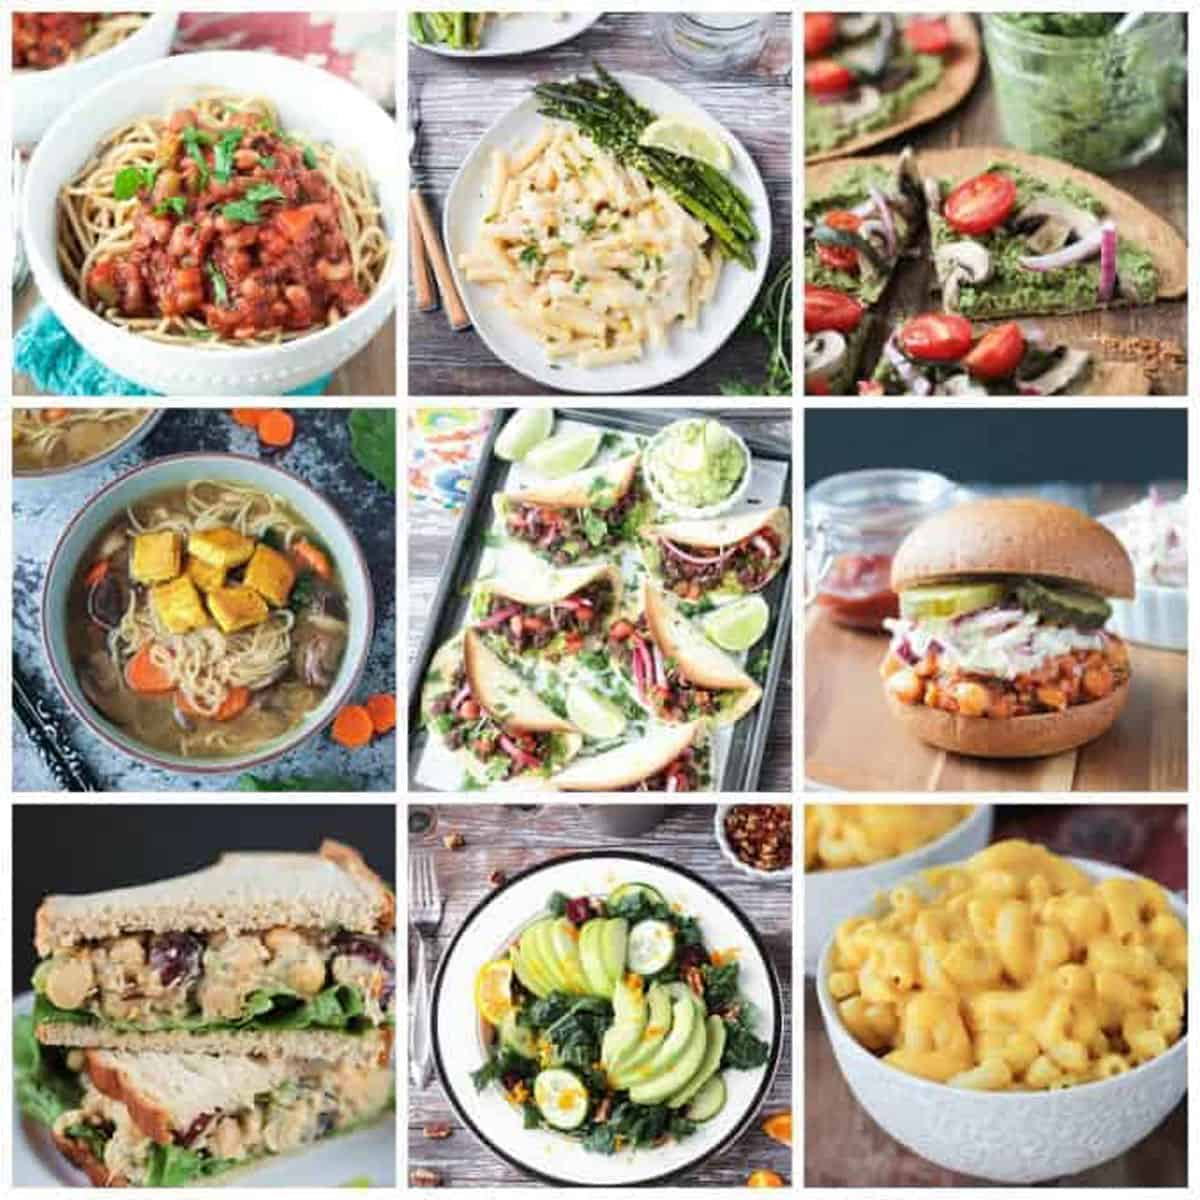 9 photo collage of popular plant based diet recipes.